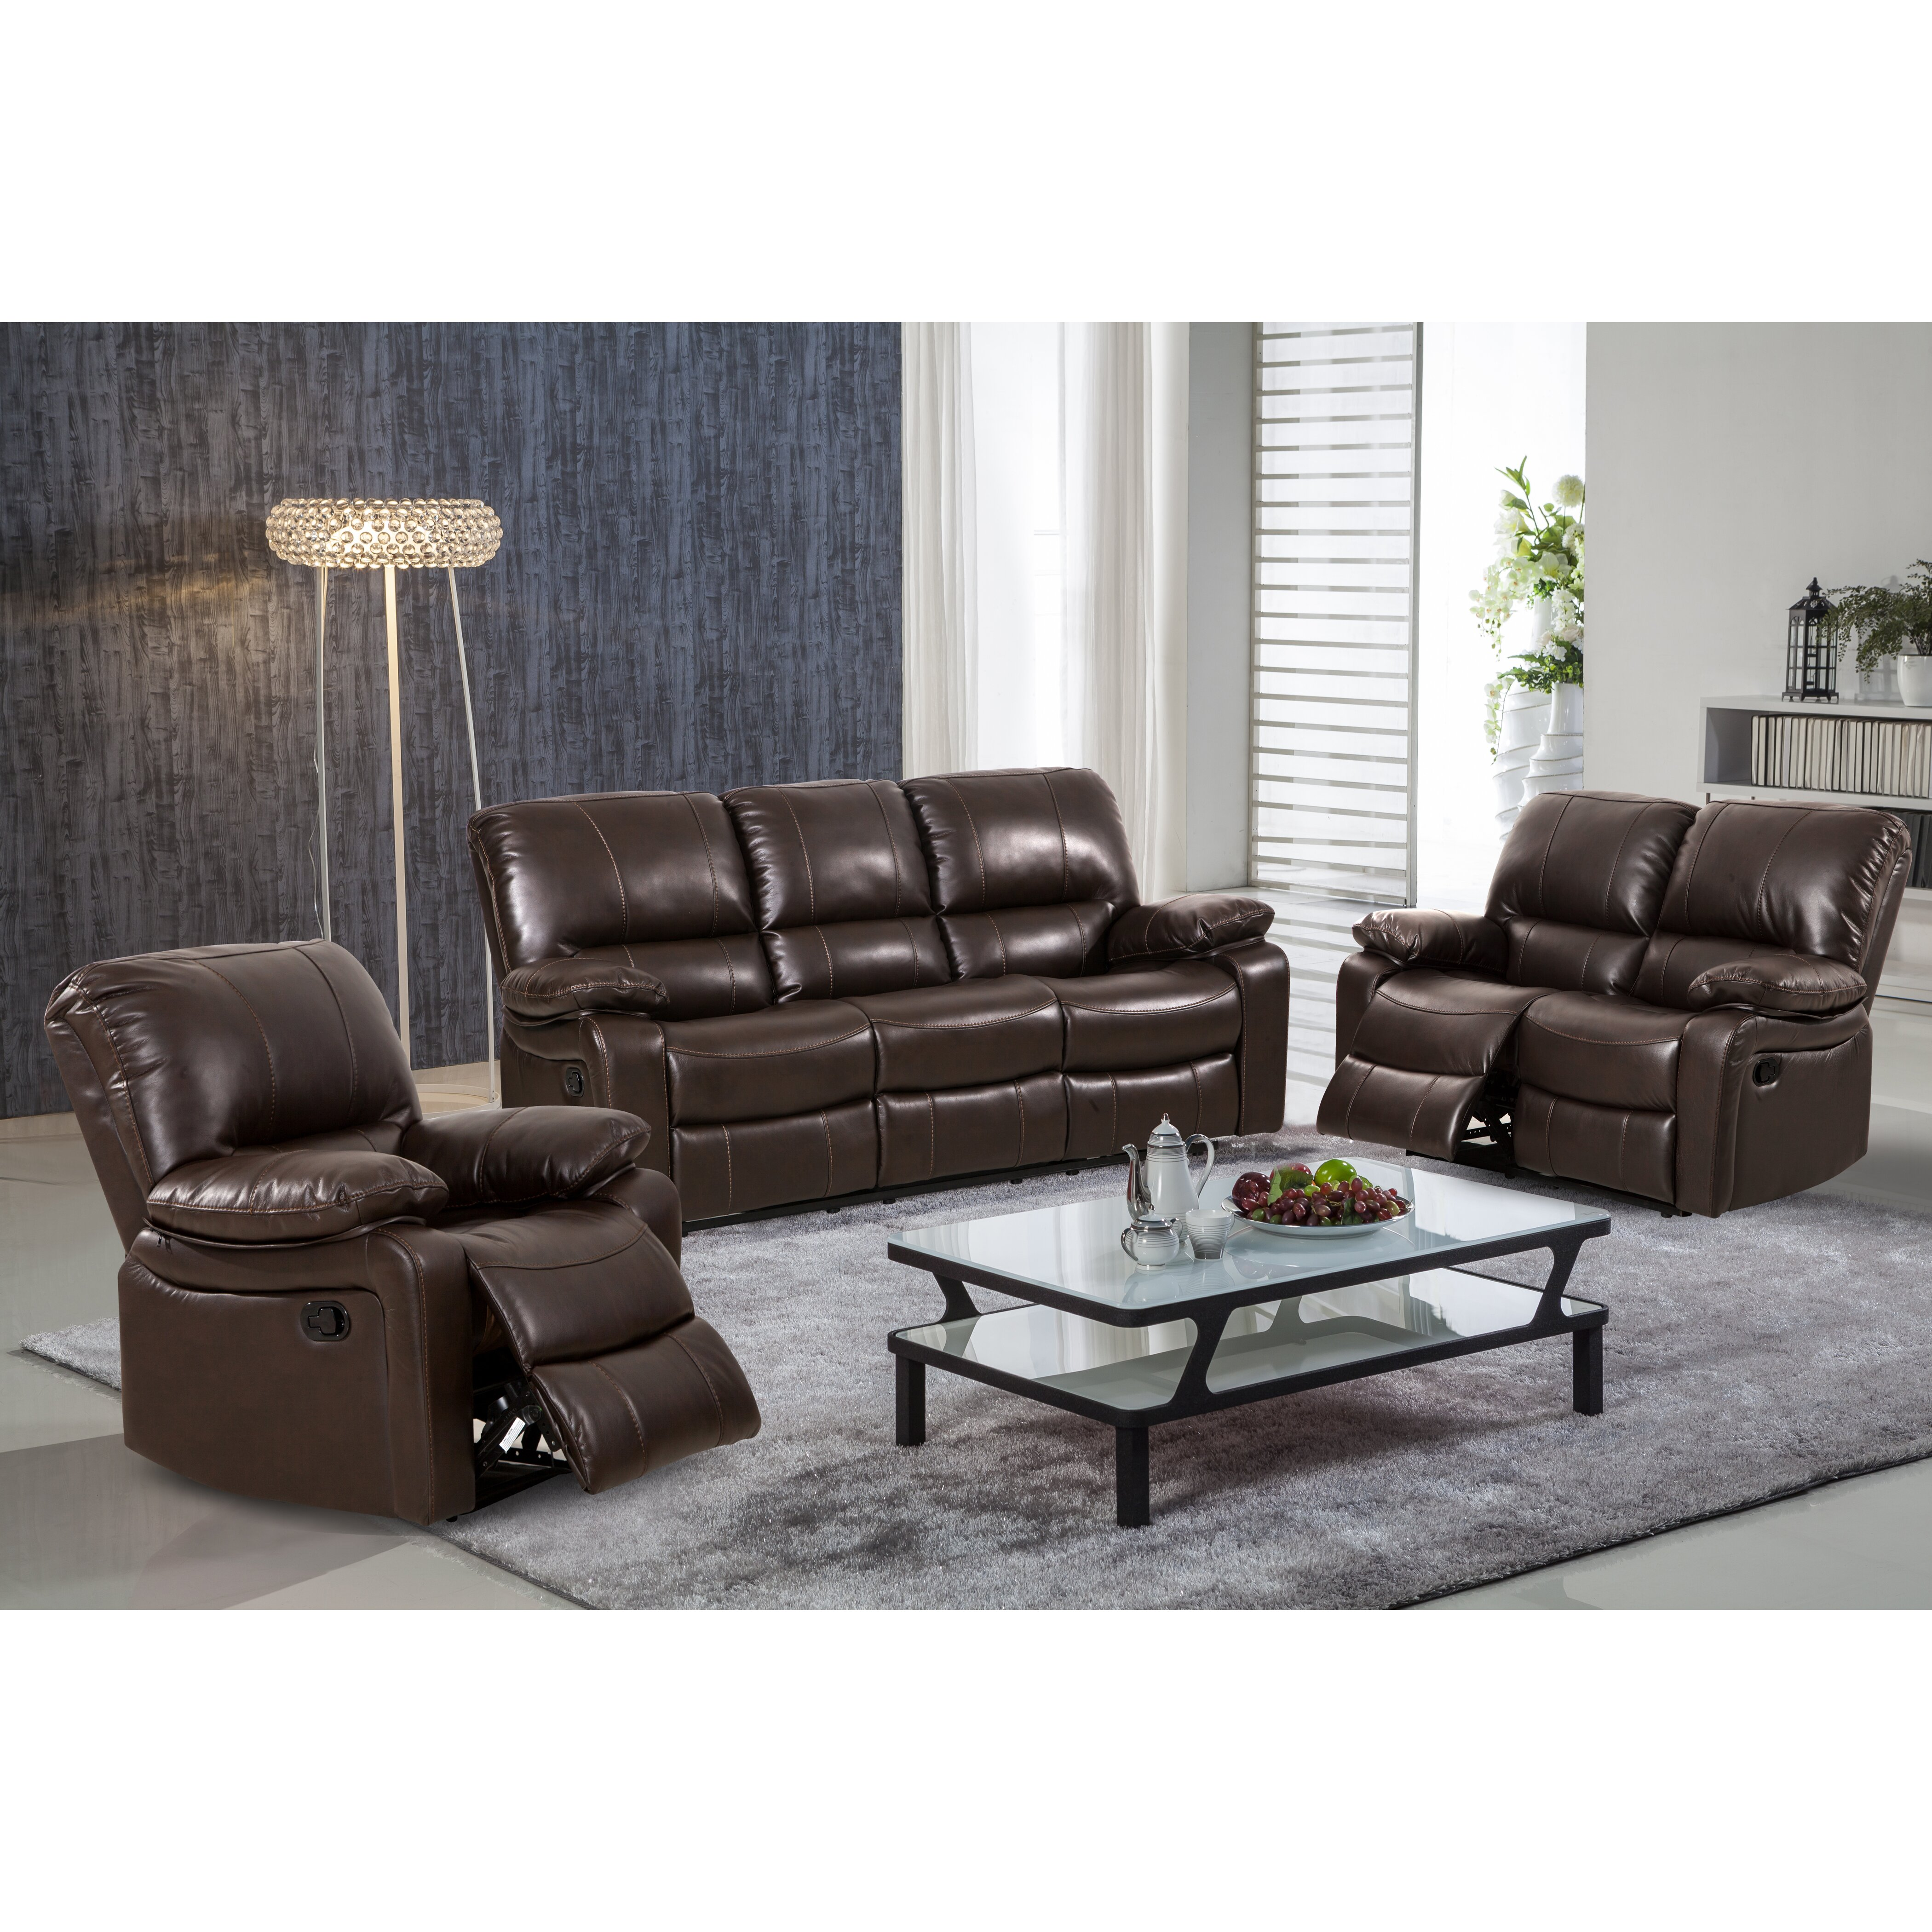 Reclining Living Room Set Living In Style Layla 3 Piece Leather Gel Reclining Living Room